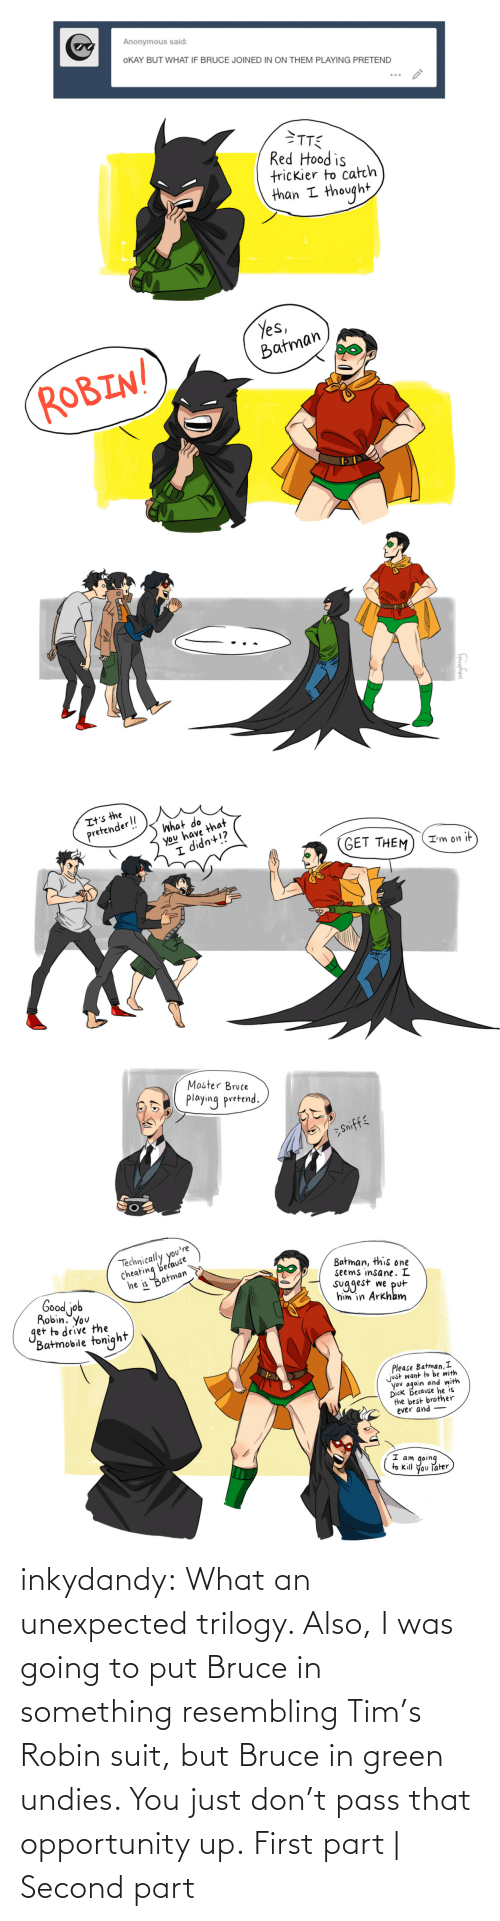 Going To: inkydandy: What an unexpected trilogy. Also, I was going to put Bruce in something resembling Tim's Robin suit, but Bruce in green undies. You just don't pass that opportunity up. First part | Second part